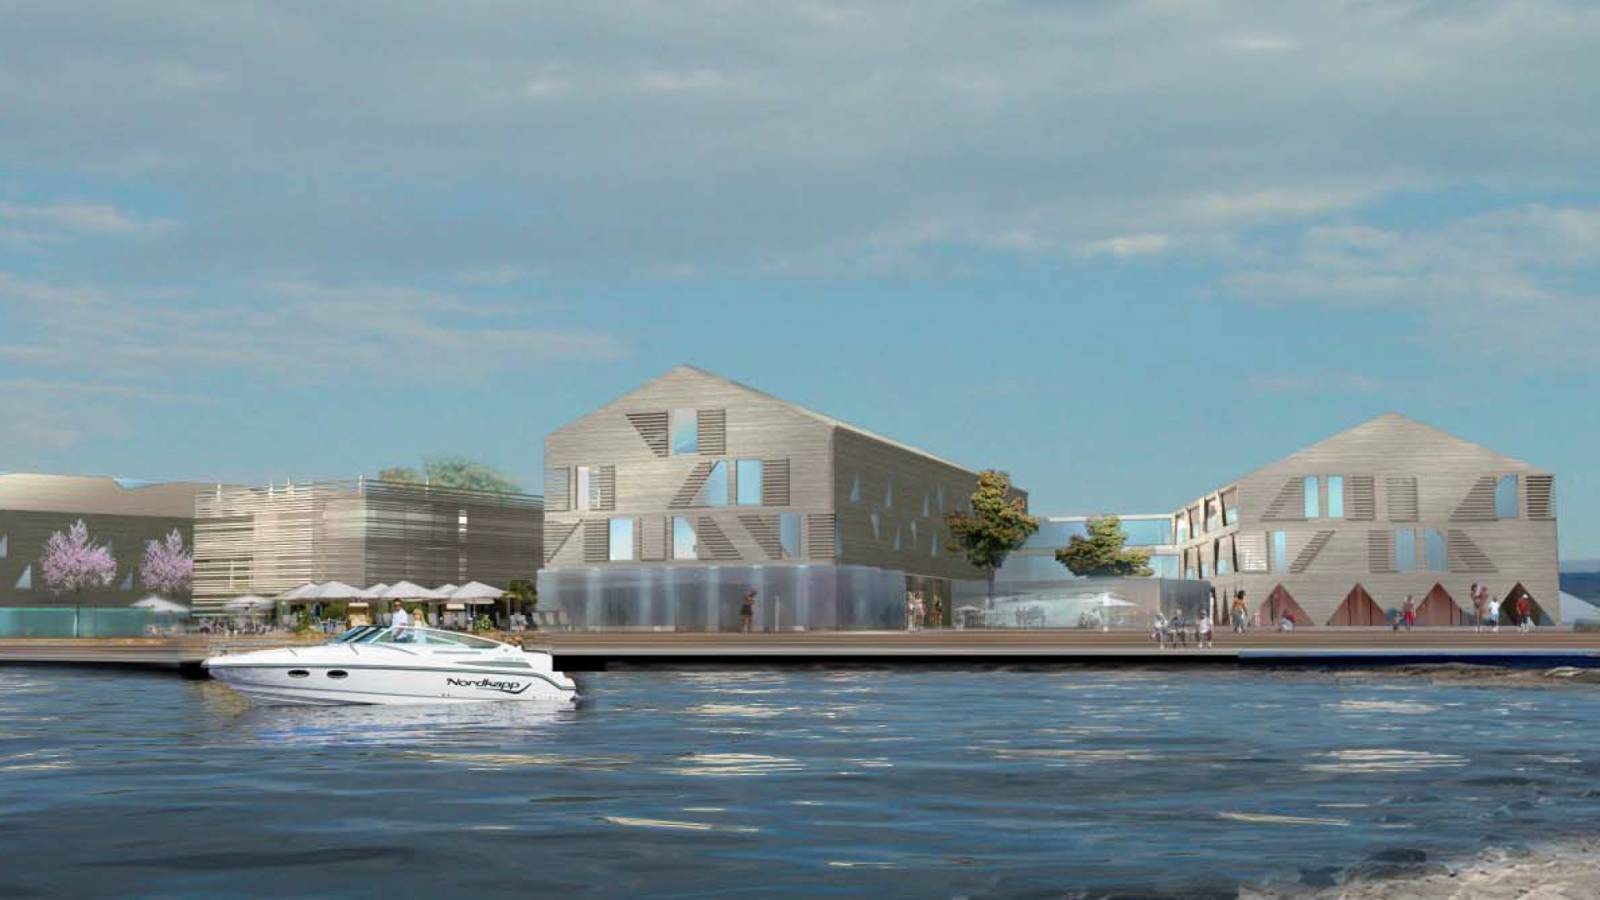 VIEW FROM BEACH - Støtvig Hotel & Resort - SPOL Architects